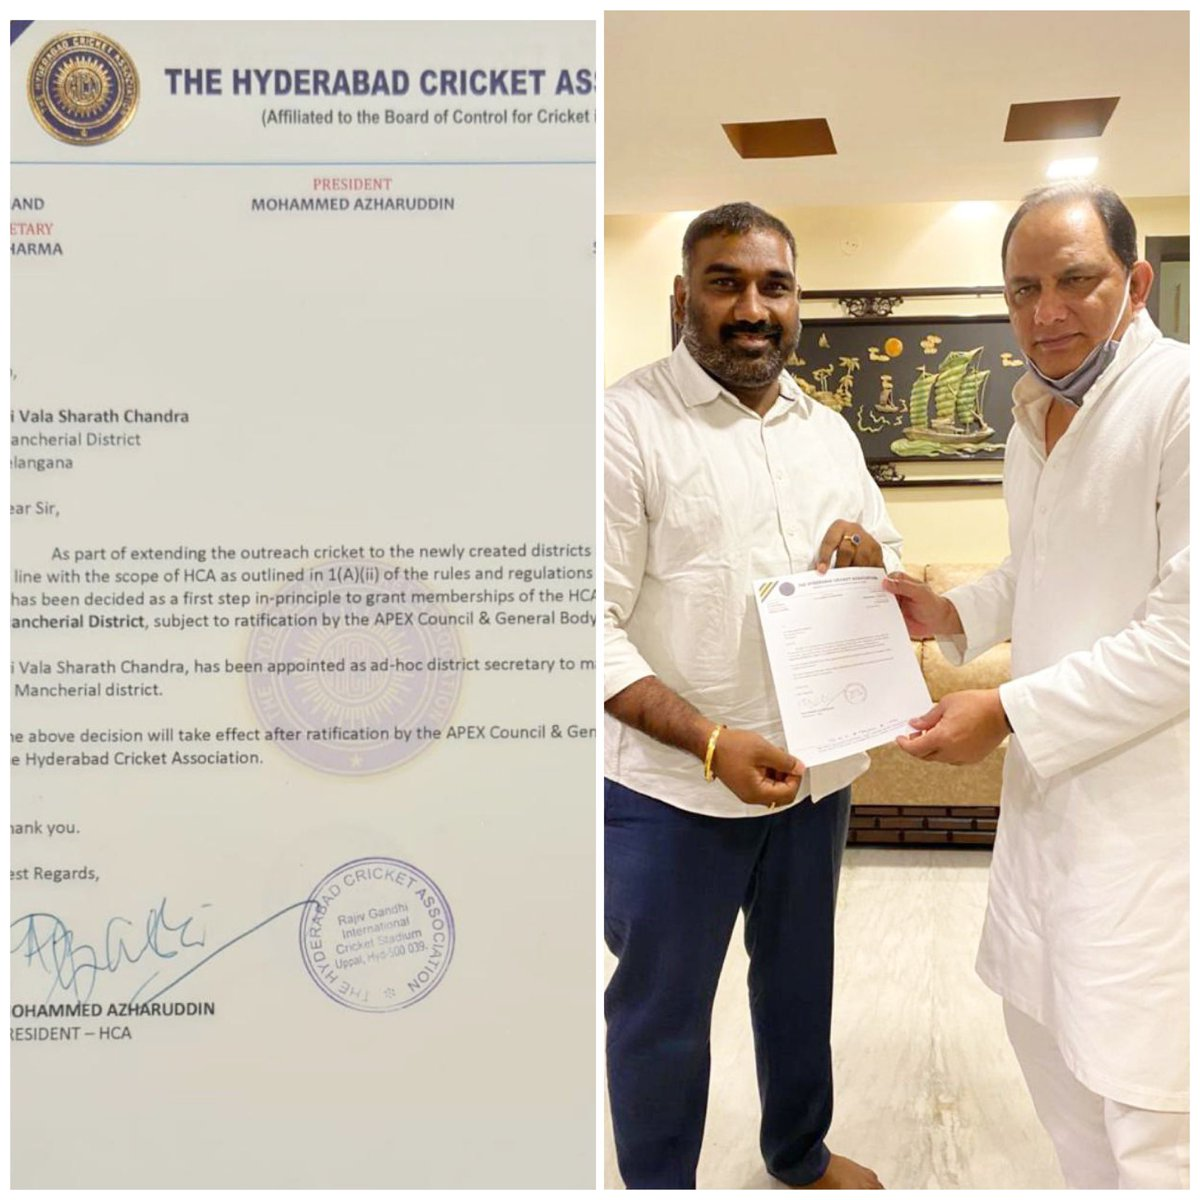 Congratulations My Beloved Brother Sharath Anna For Being Appointed As Hyderabad Cricket Association (HCA) Mancherial District Secretary   Best Wishes From your Brother  Shiva Nani (TRSV)  #cricket  #cricketlovers  #hca  #hyderabad @SharathRaoTRS https://t.co/OdsK7O6VIb